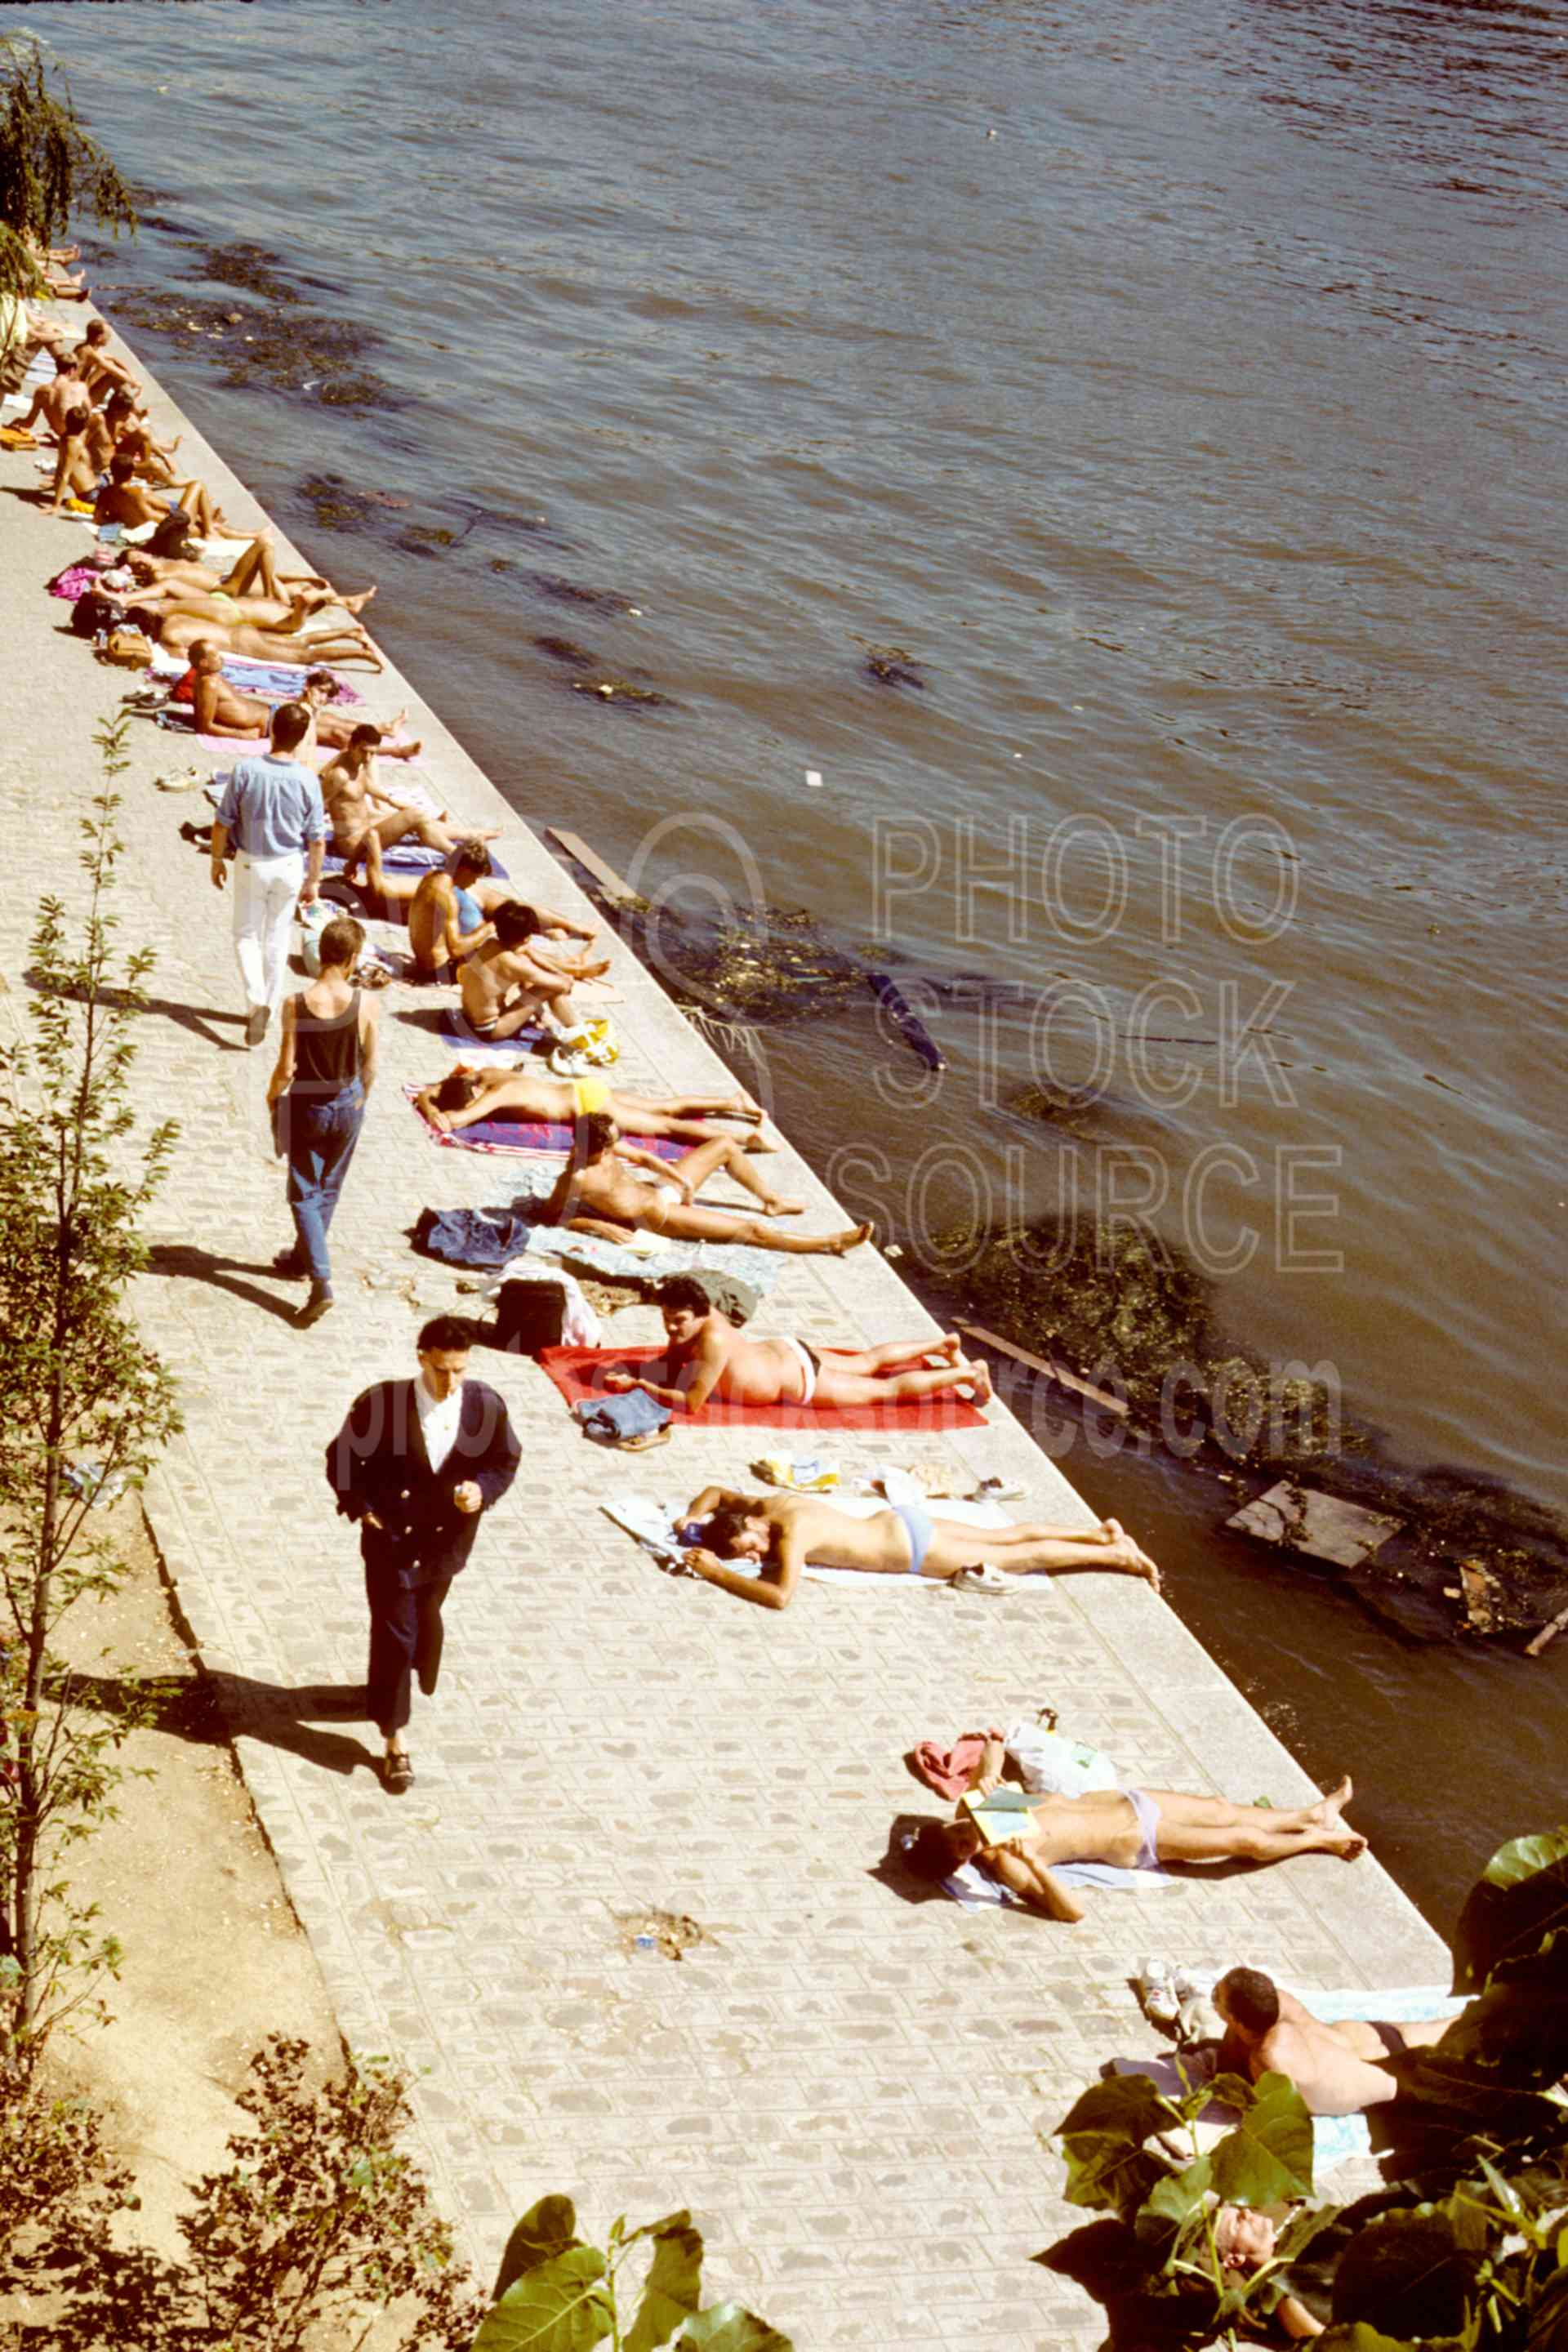 Sunbathers on the Siene,europe,sunbathing